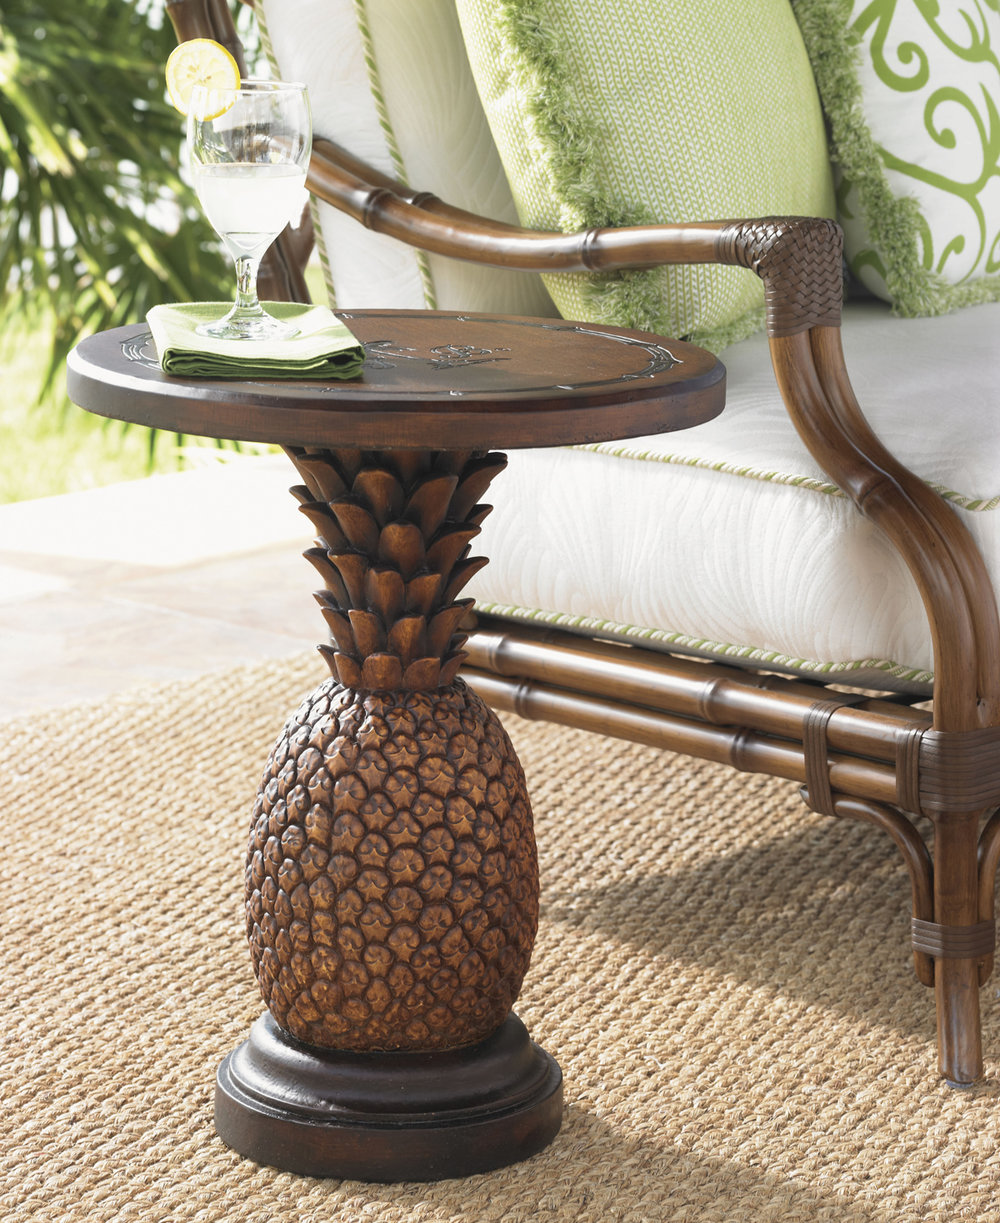 ALFRESCO LIVING Pineapple Table by Tommy Bahama Outdoor Furniture